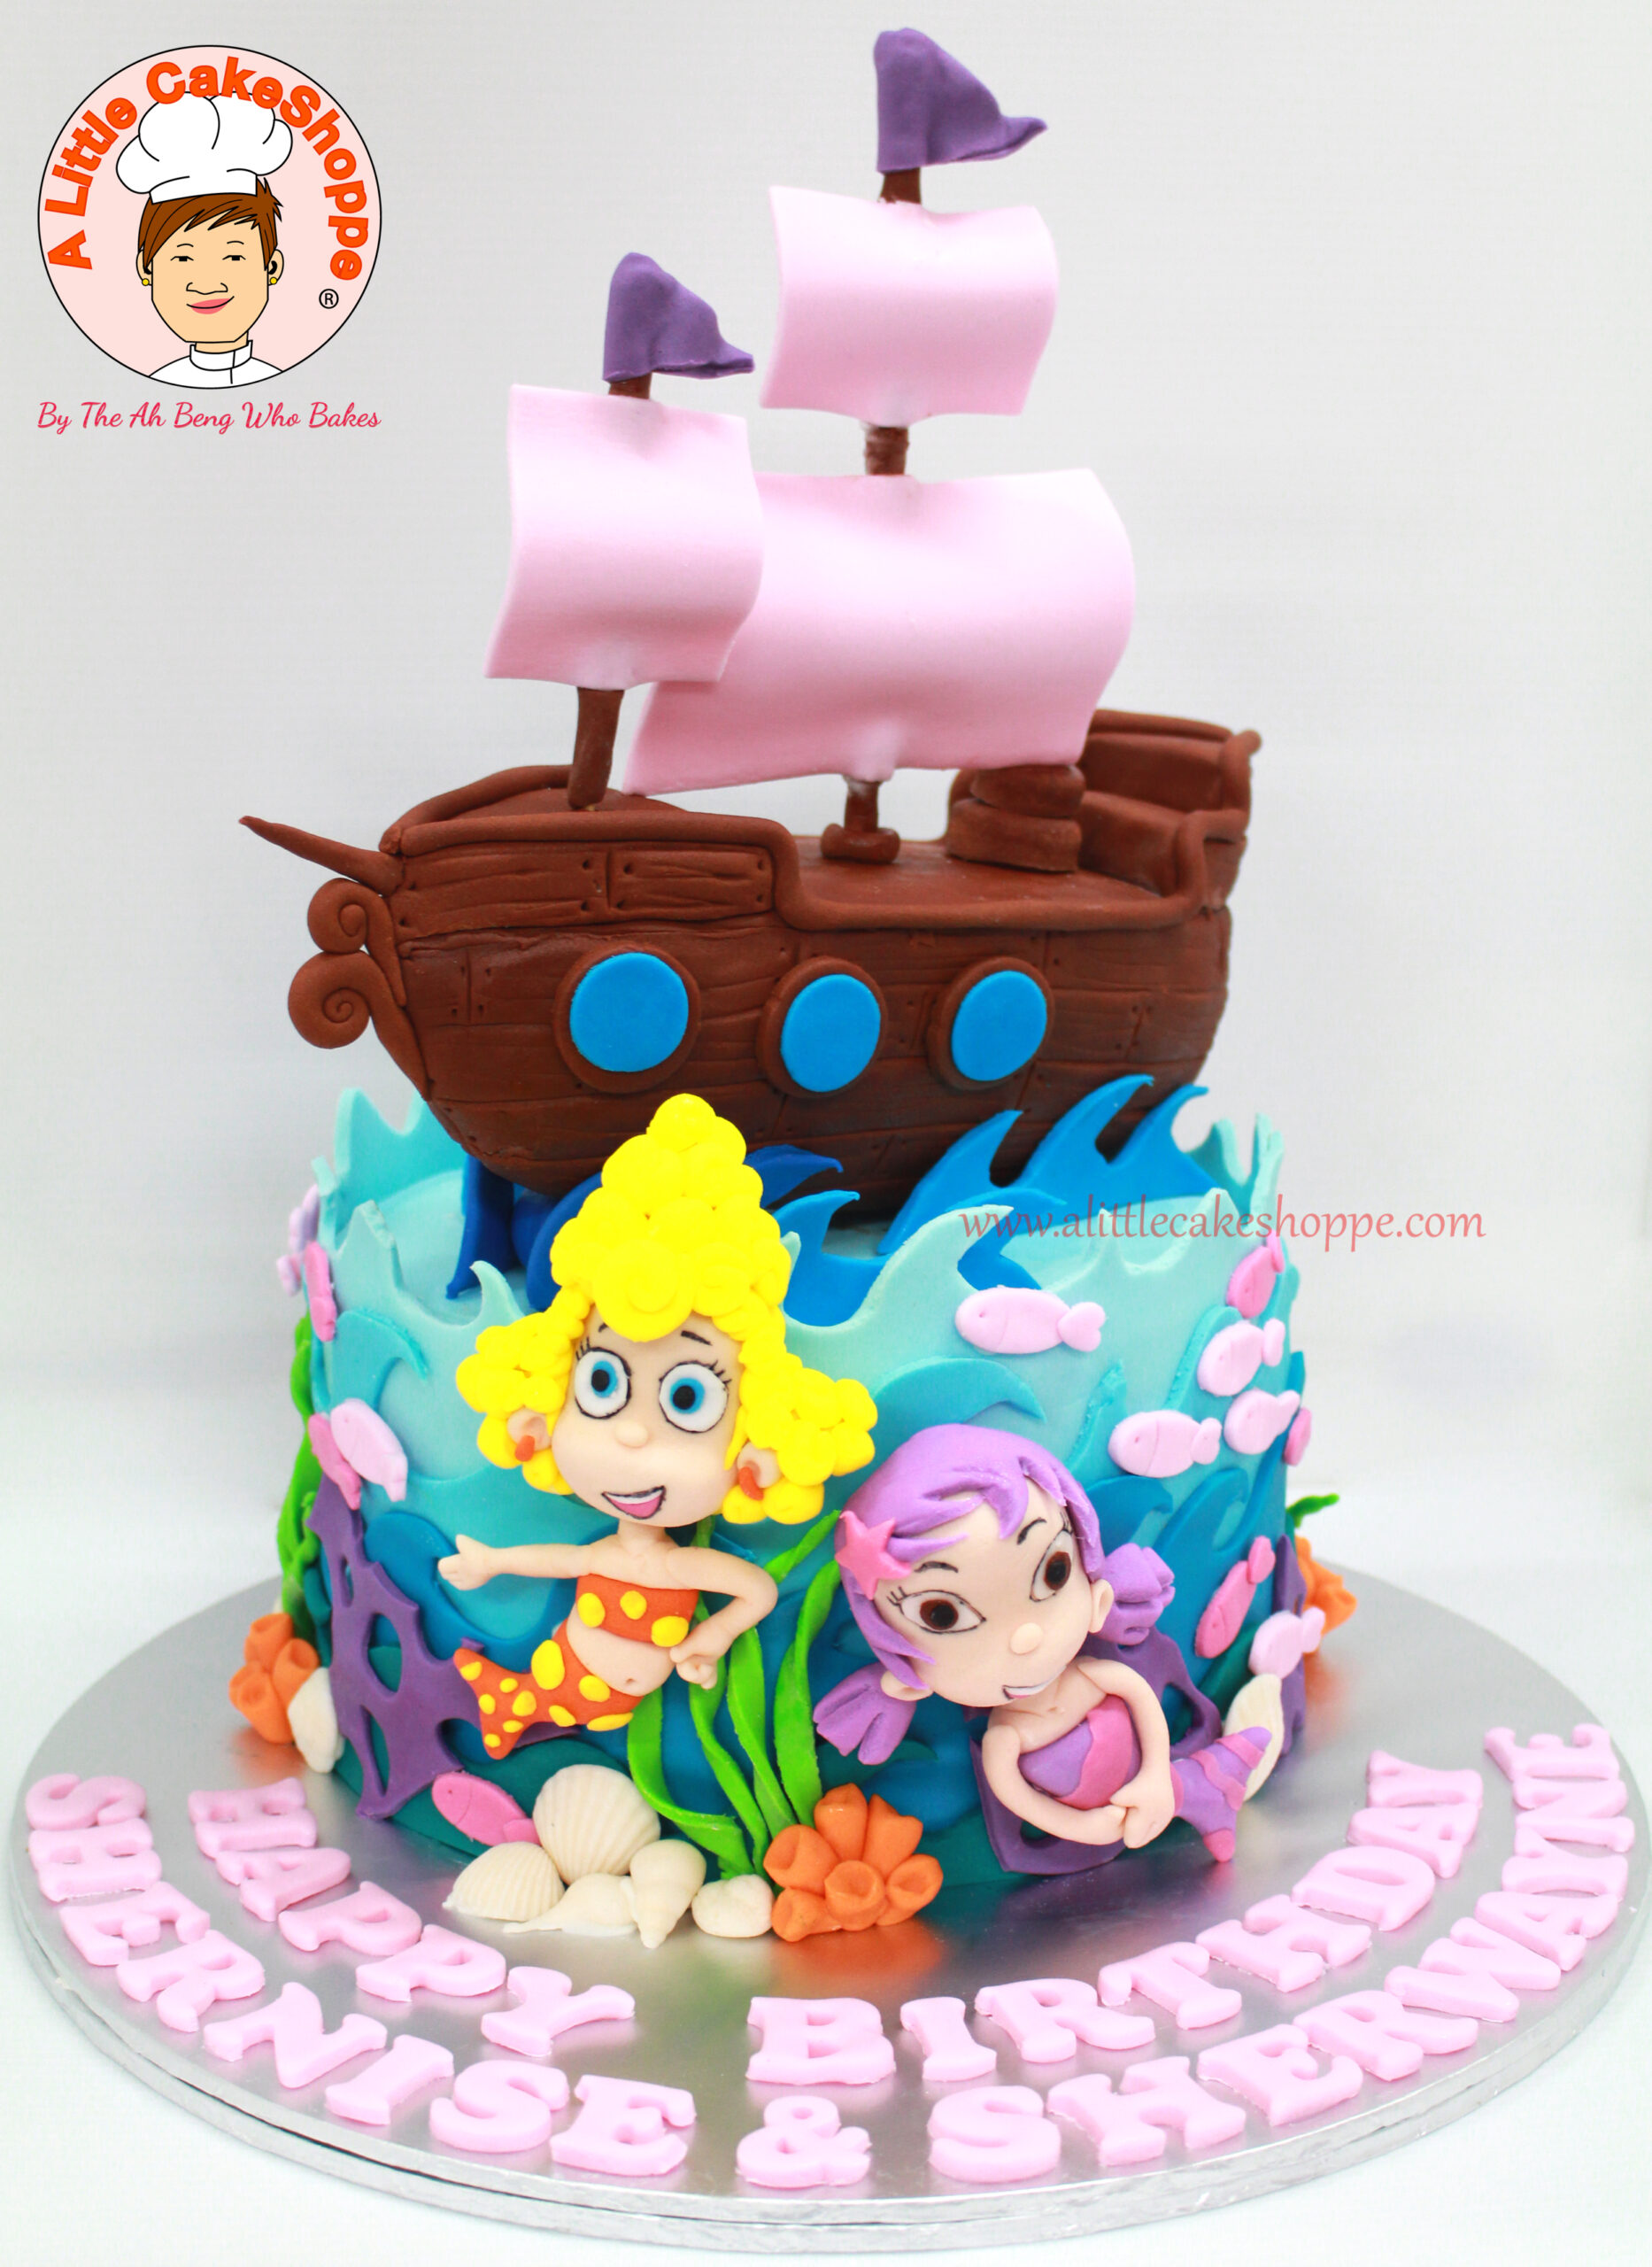 Best Customised Cake Shop Singapore custom cake 2D 3D birthday cake cupcakes desserts wedding corporate events anniversary 1st birthday 21st birthday fondant fresh cream buttercream cakes alittlecakeshoppe a little cake shoppe compliments review singapore bakers SG cake shop cakeshop ah beng who bakes bubble guppies